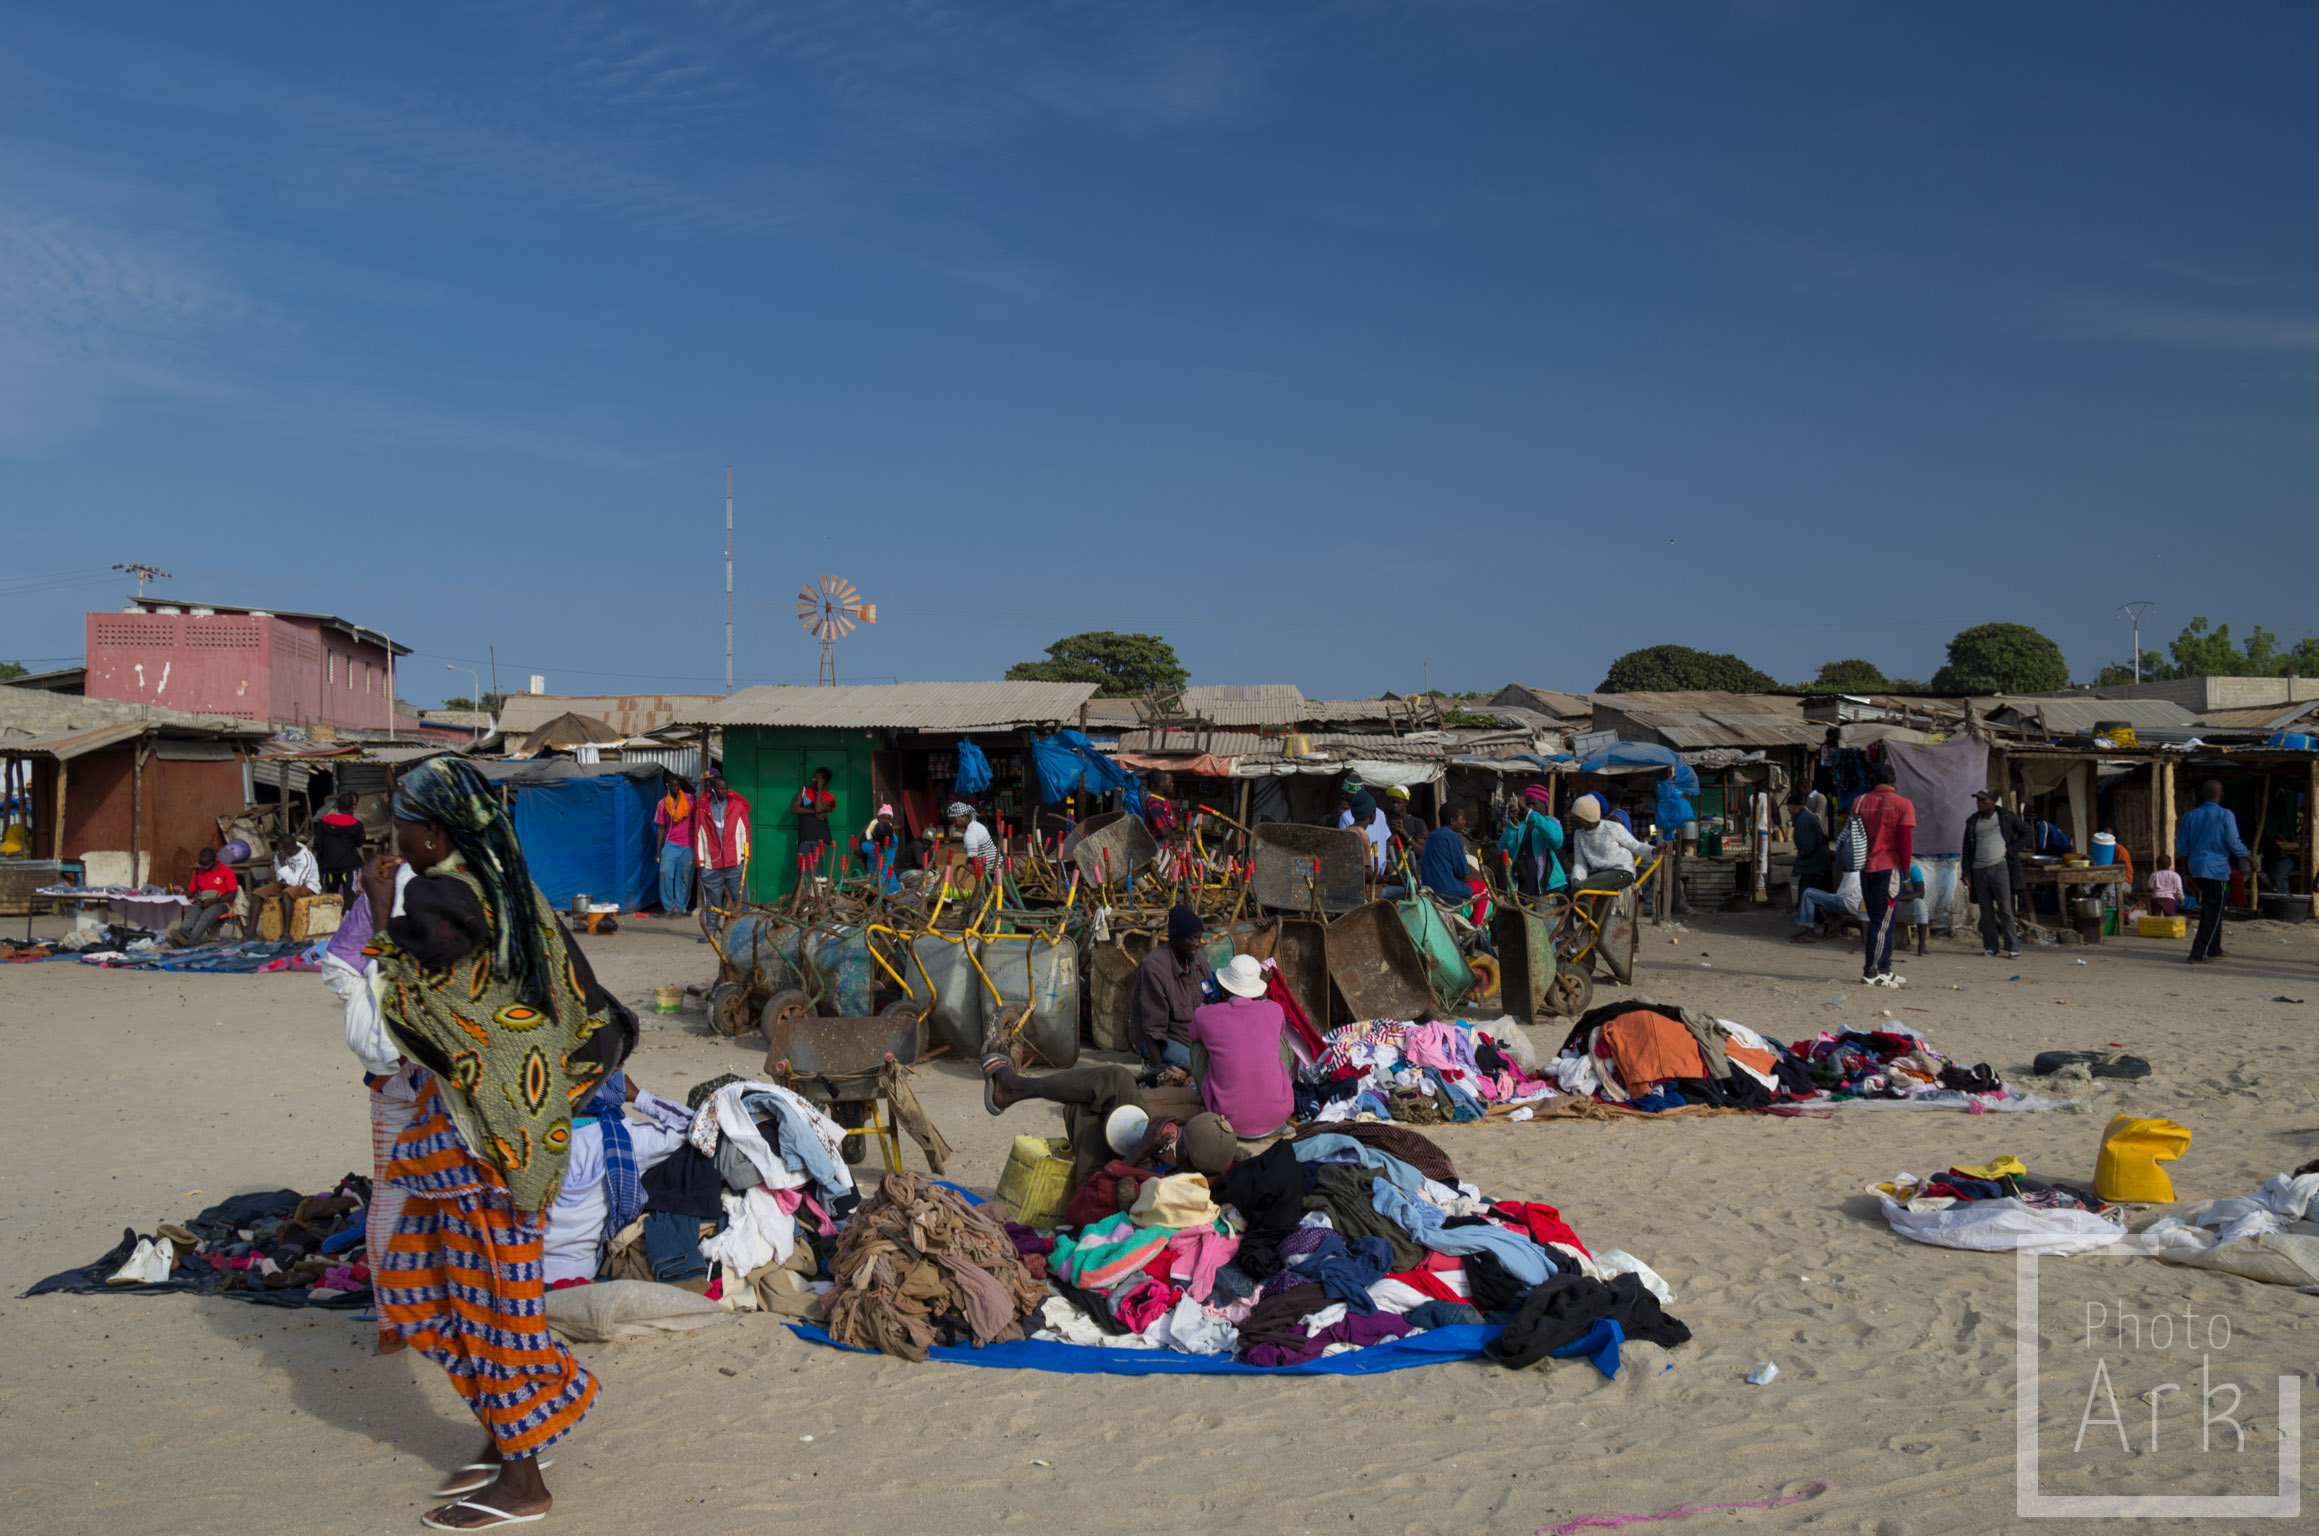 The Gambia Beach Market